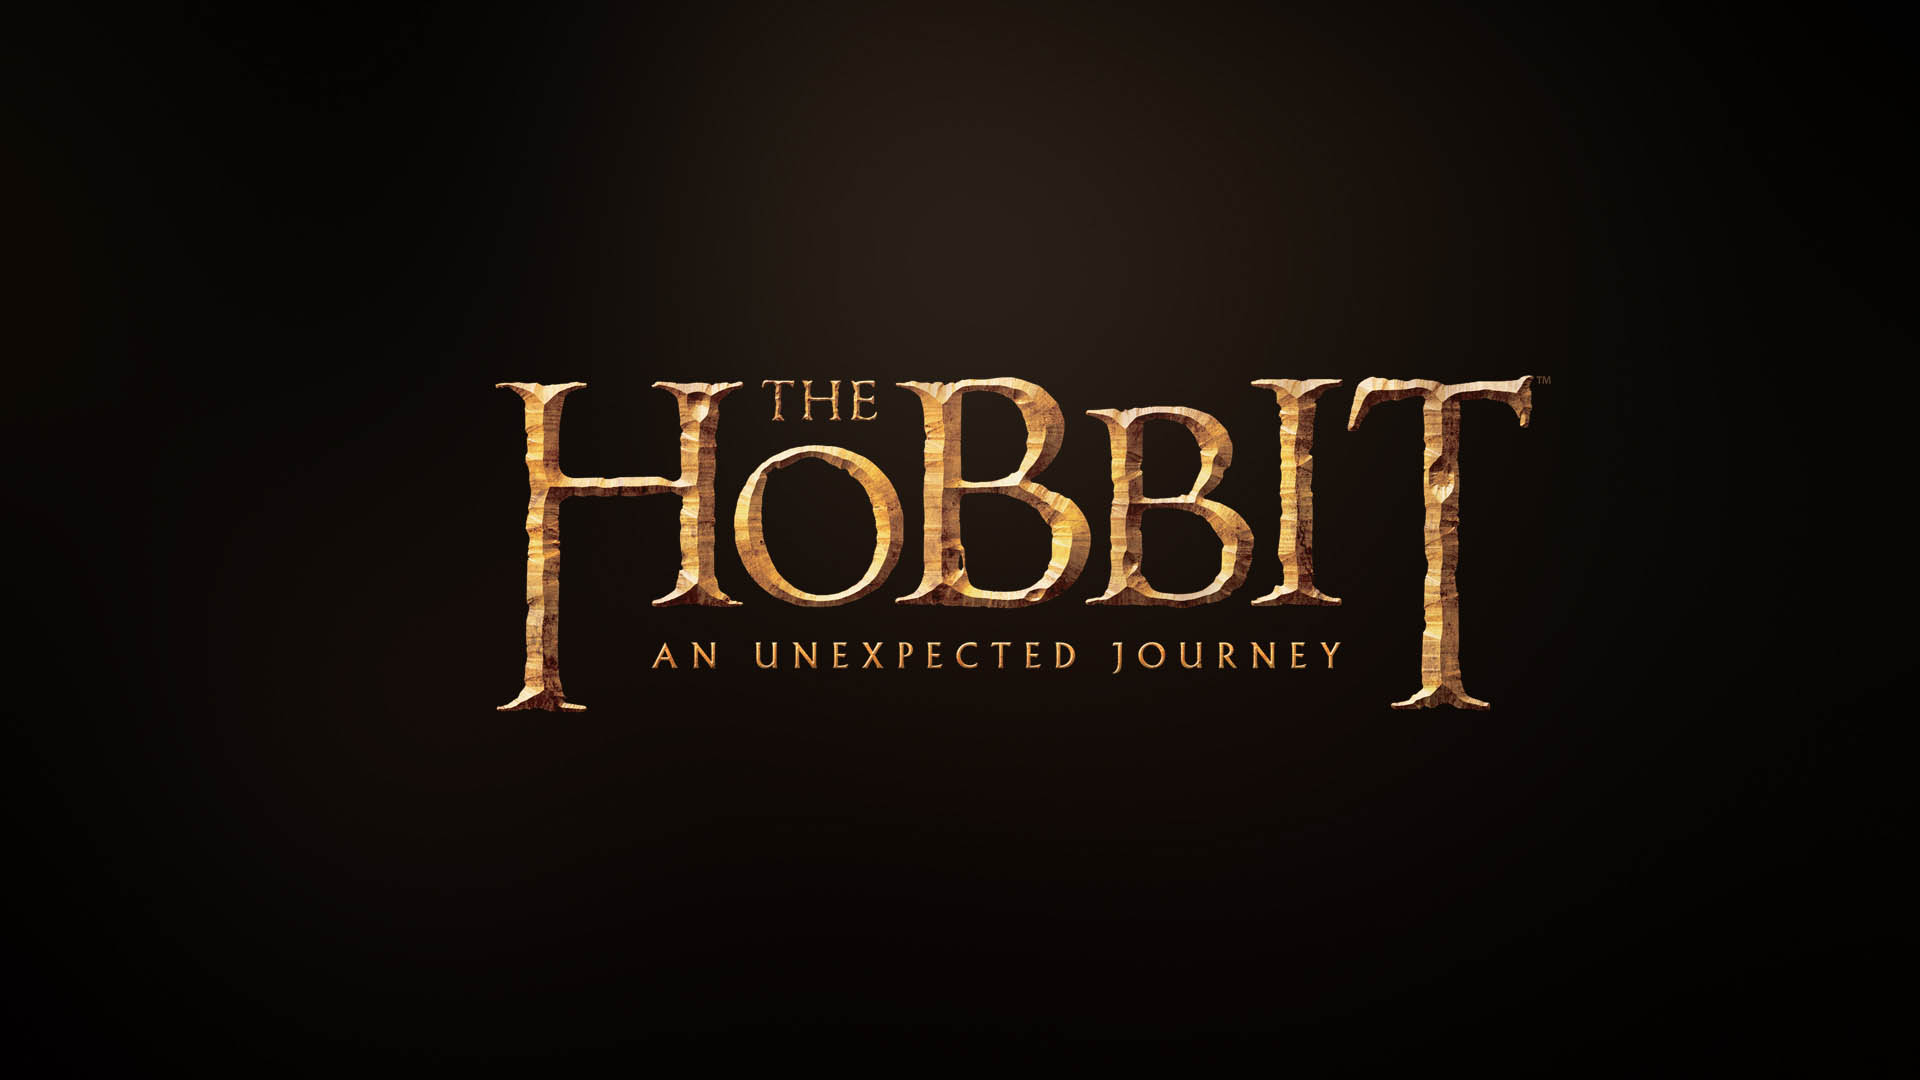 The Hobbit An Unexpected Journey Wallpapers 1920x1080